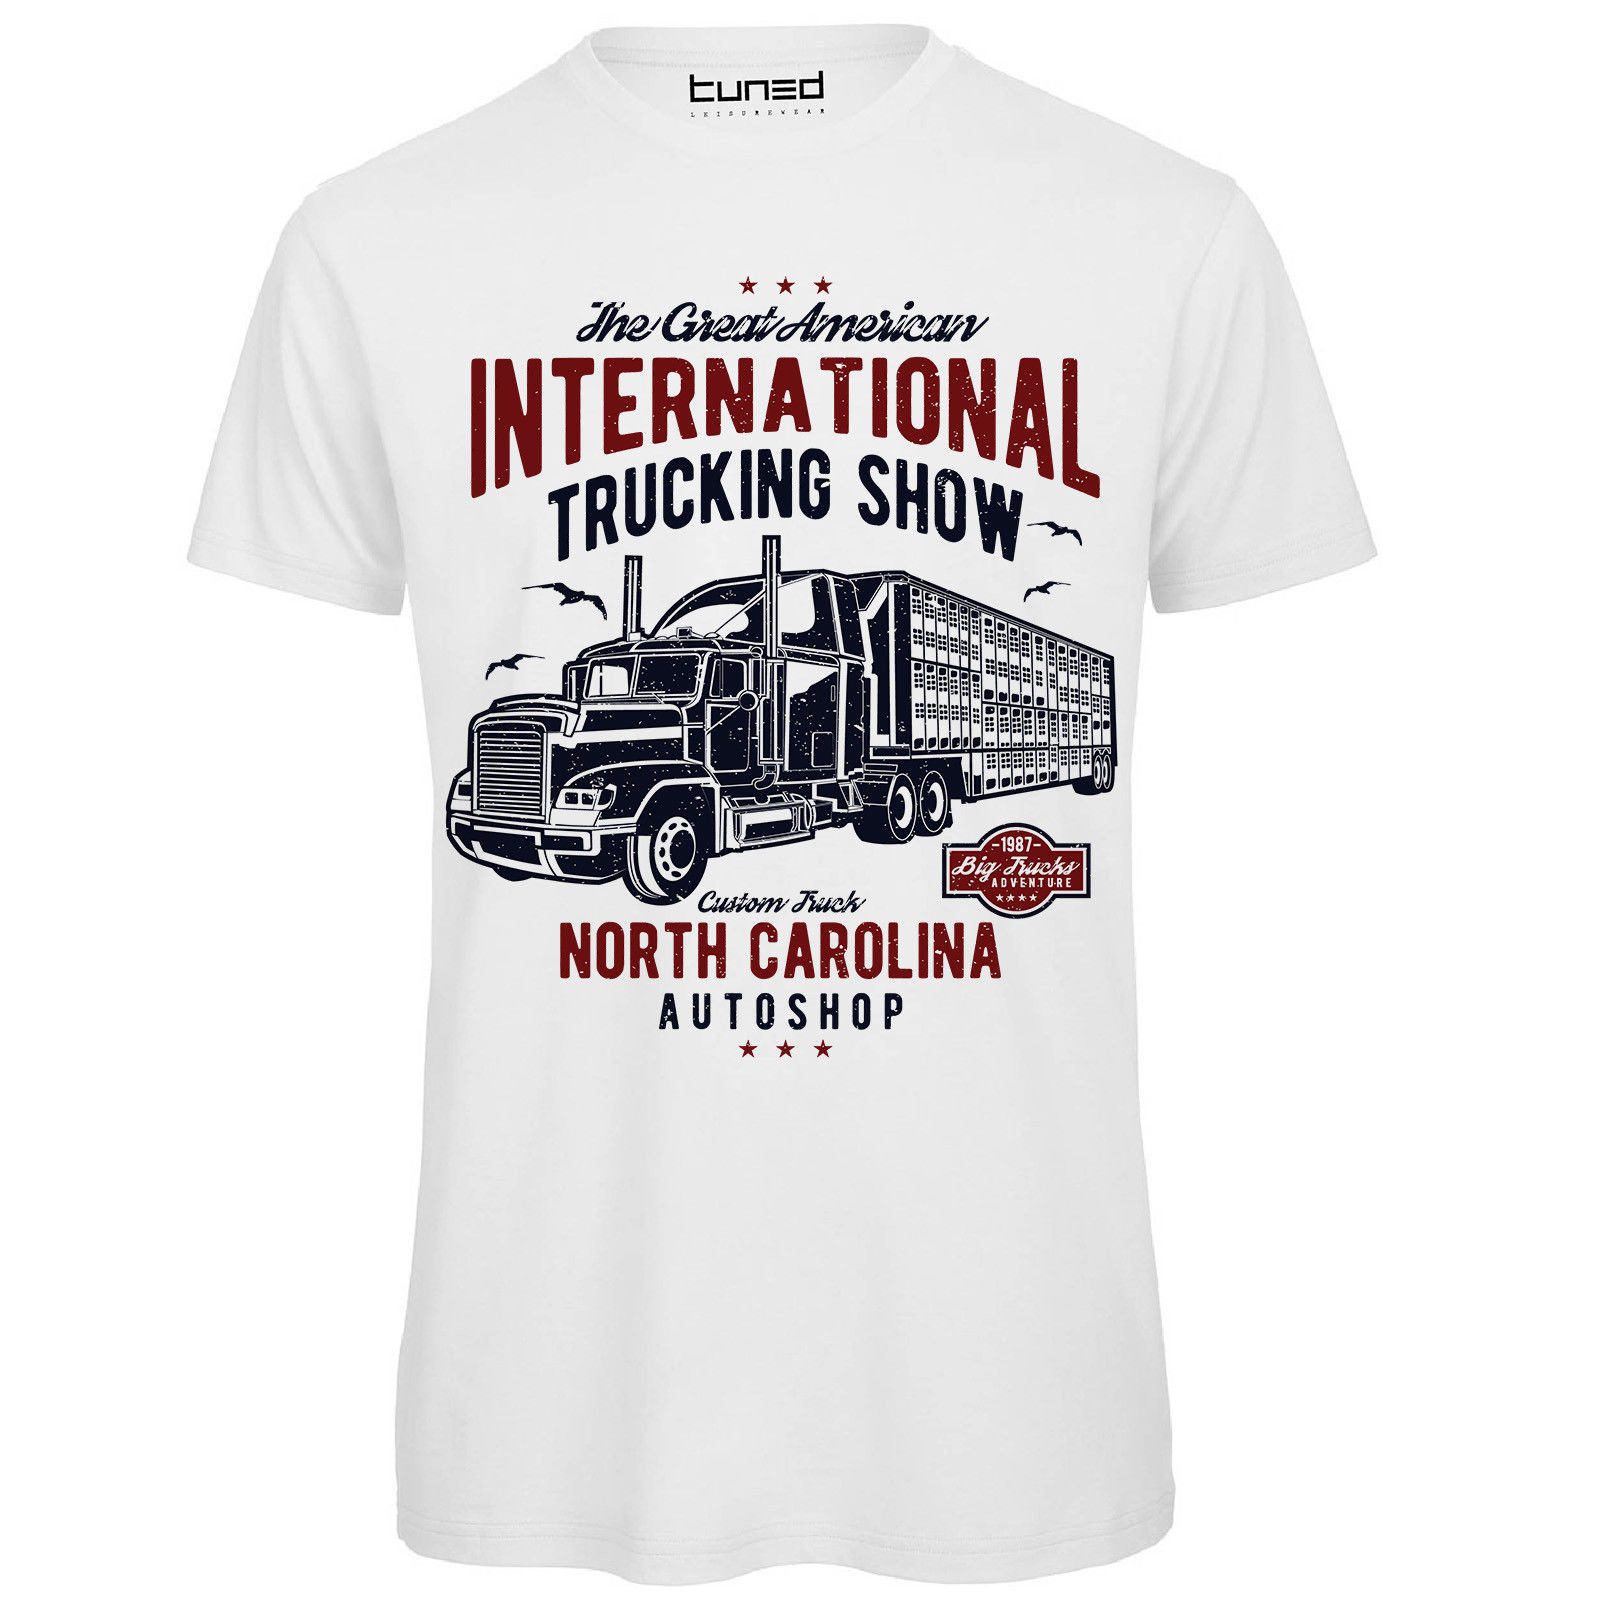 T-Shirt Divertente Uomo Maglietta Cotone Con Stampa Camion Big Truck Tuned Hipster Tees Summer Mens T Shirt